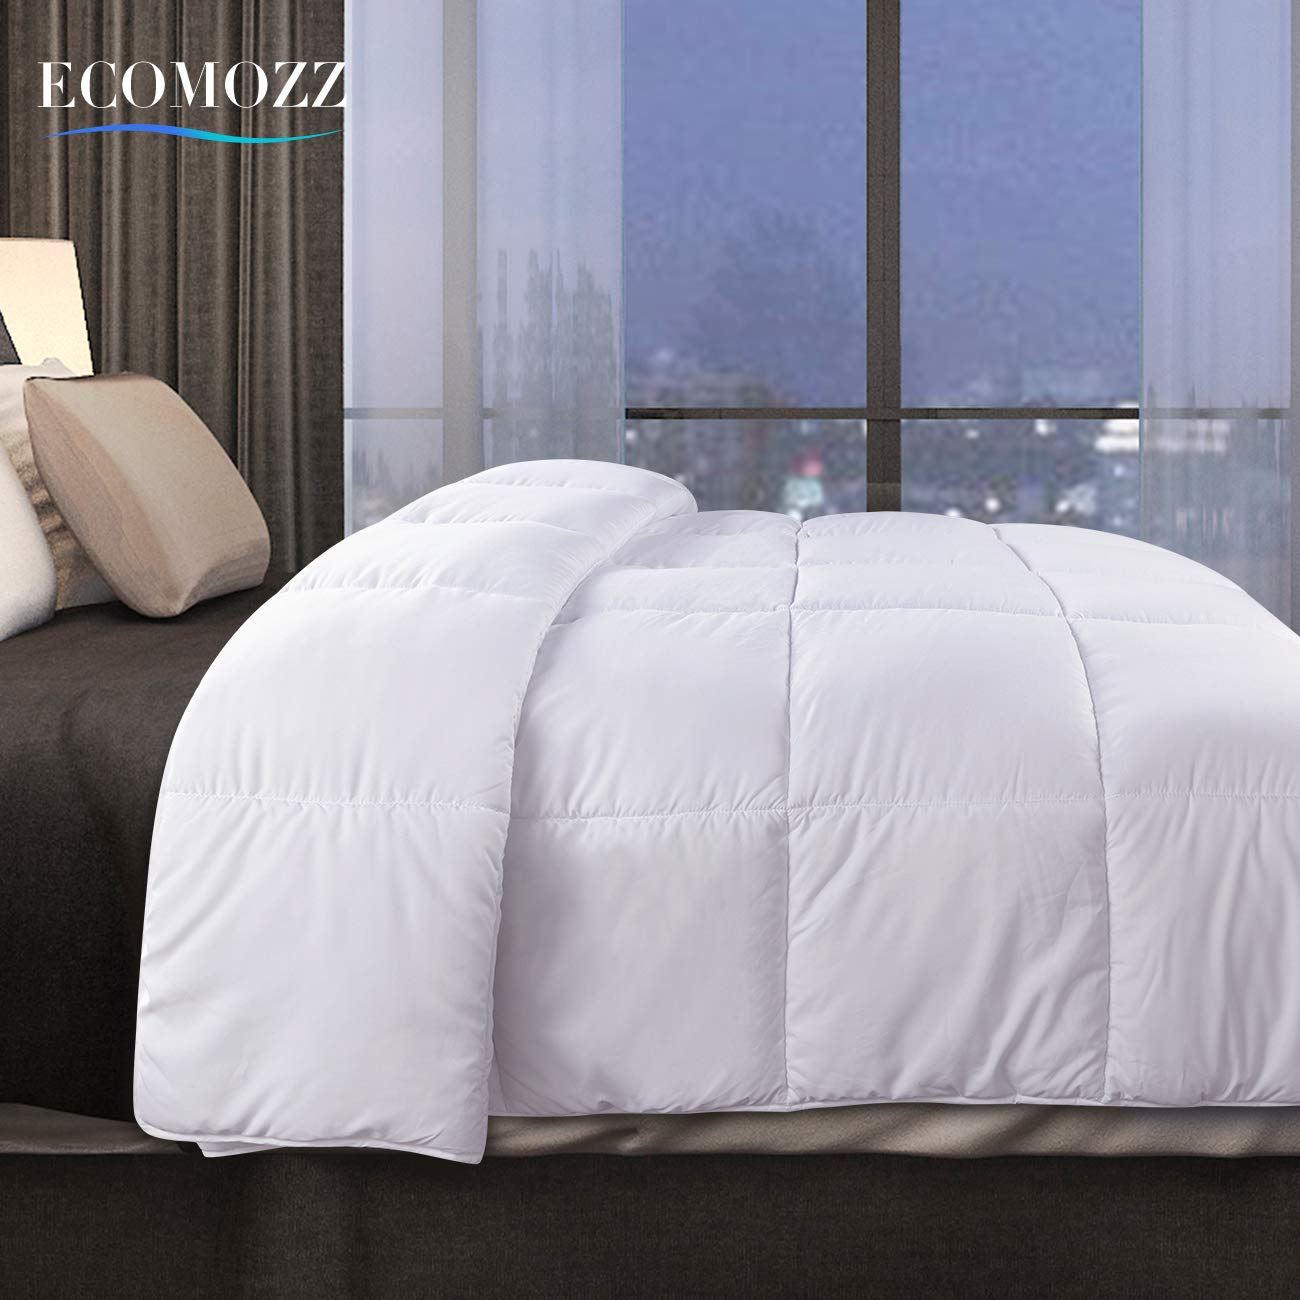 EcoMozz King Comforter with Corner Tabs - All Season Down Alternative Comforter - Soft Warm Quilted Duvet Insert - Hypoallergenic Fluffy Hotel Collection - White by EcoMozz (Image #2)